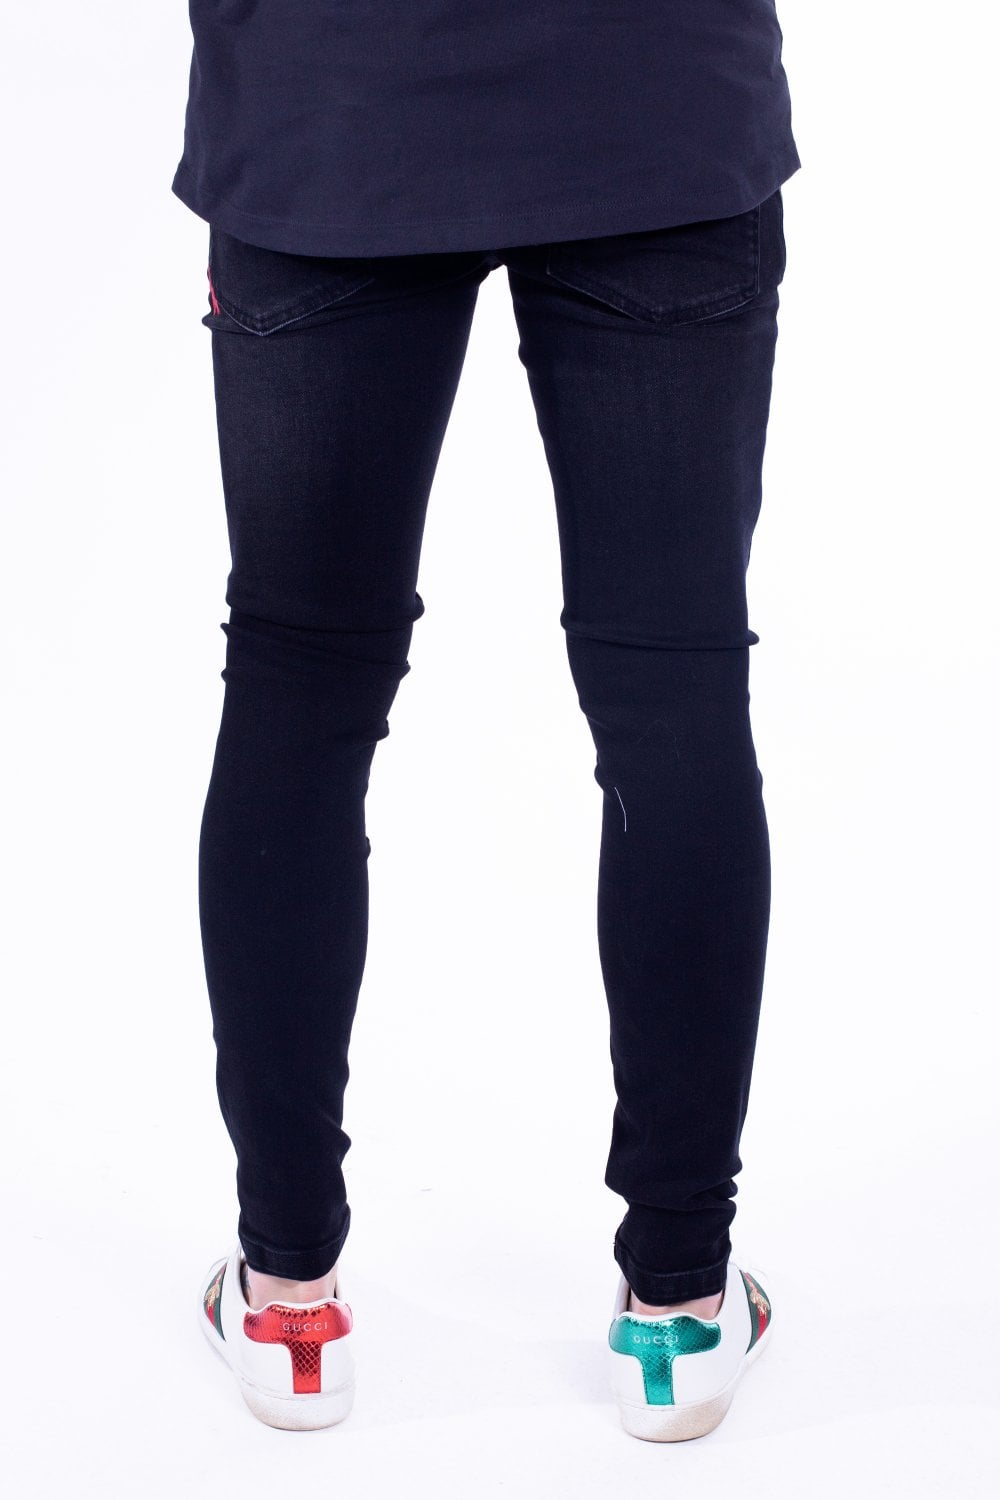 11 Degrees Super Stretch Distressed Skinny Jeans - Black